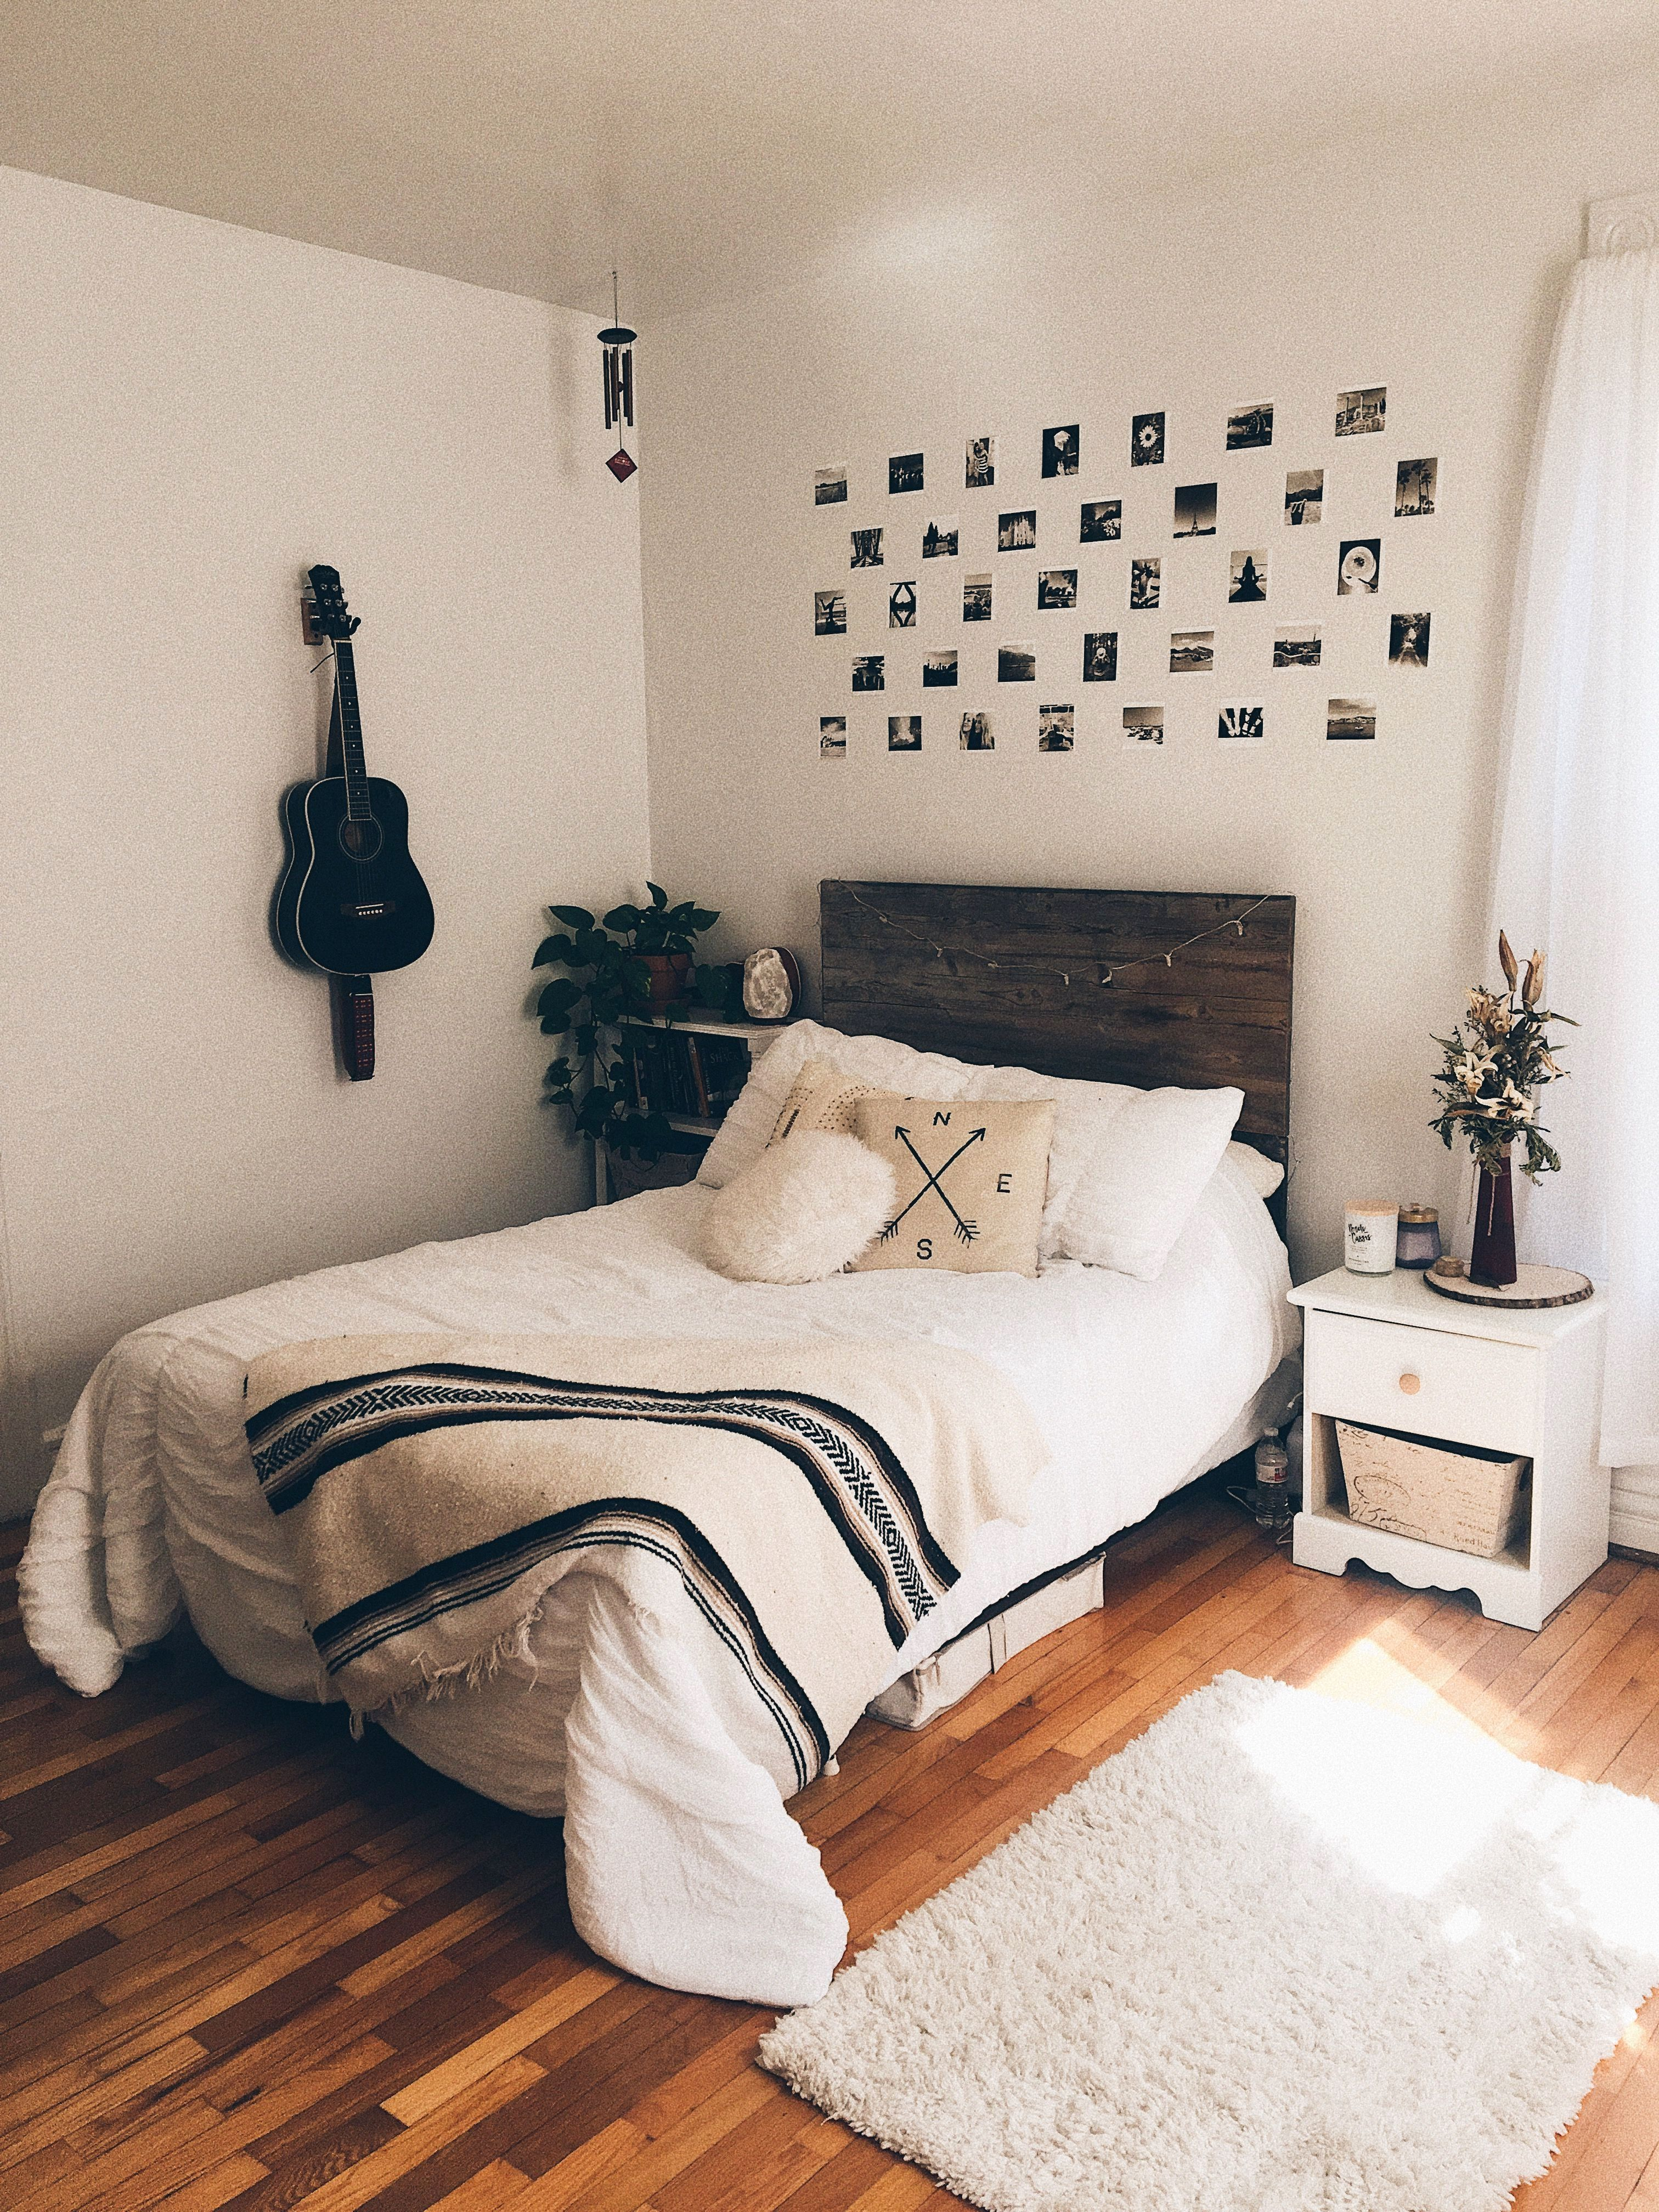 Pin By A L L Y On Home Decor Small Room Bedroom Bedroom